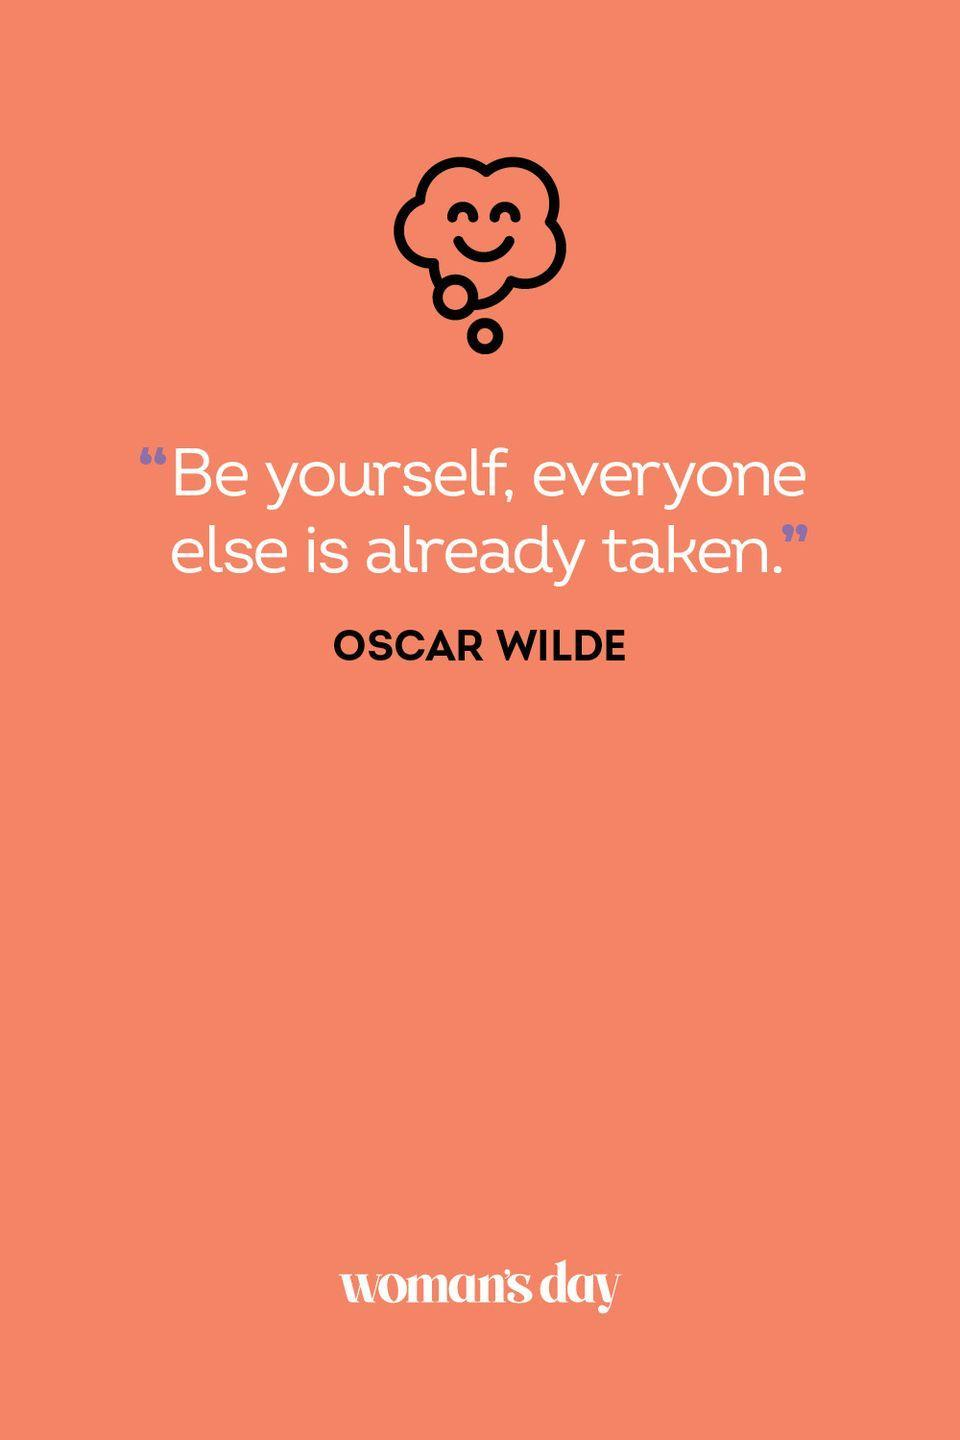 <p>Be yourself, everyone else is already taken.</p>